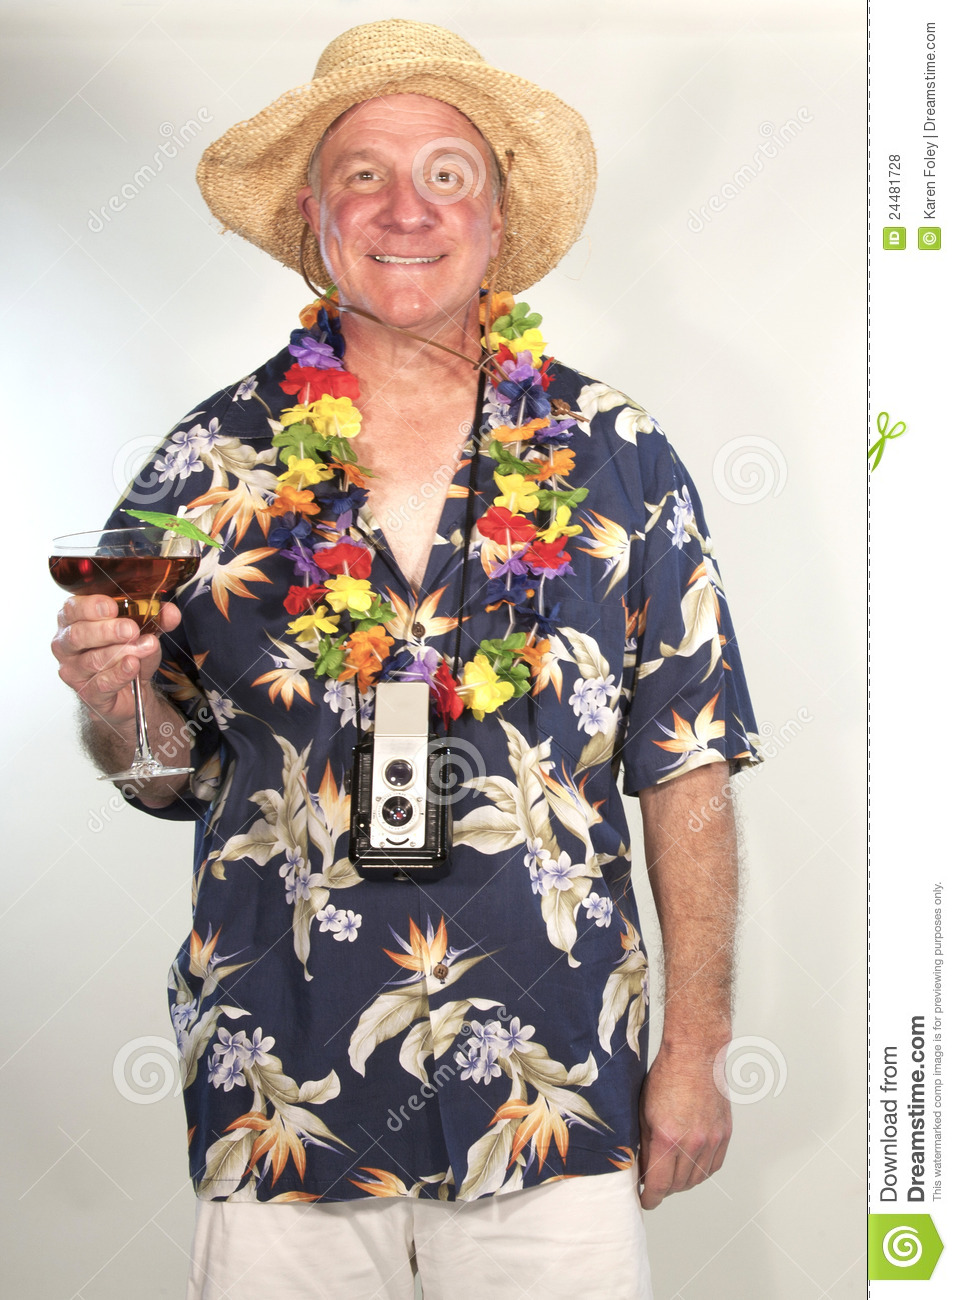 Tropical Tourist stock photo. Image of retired, vacationer